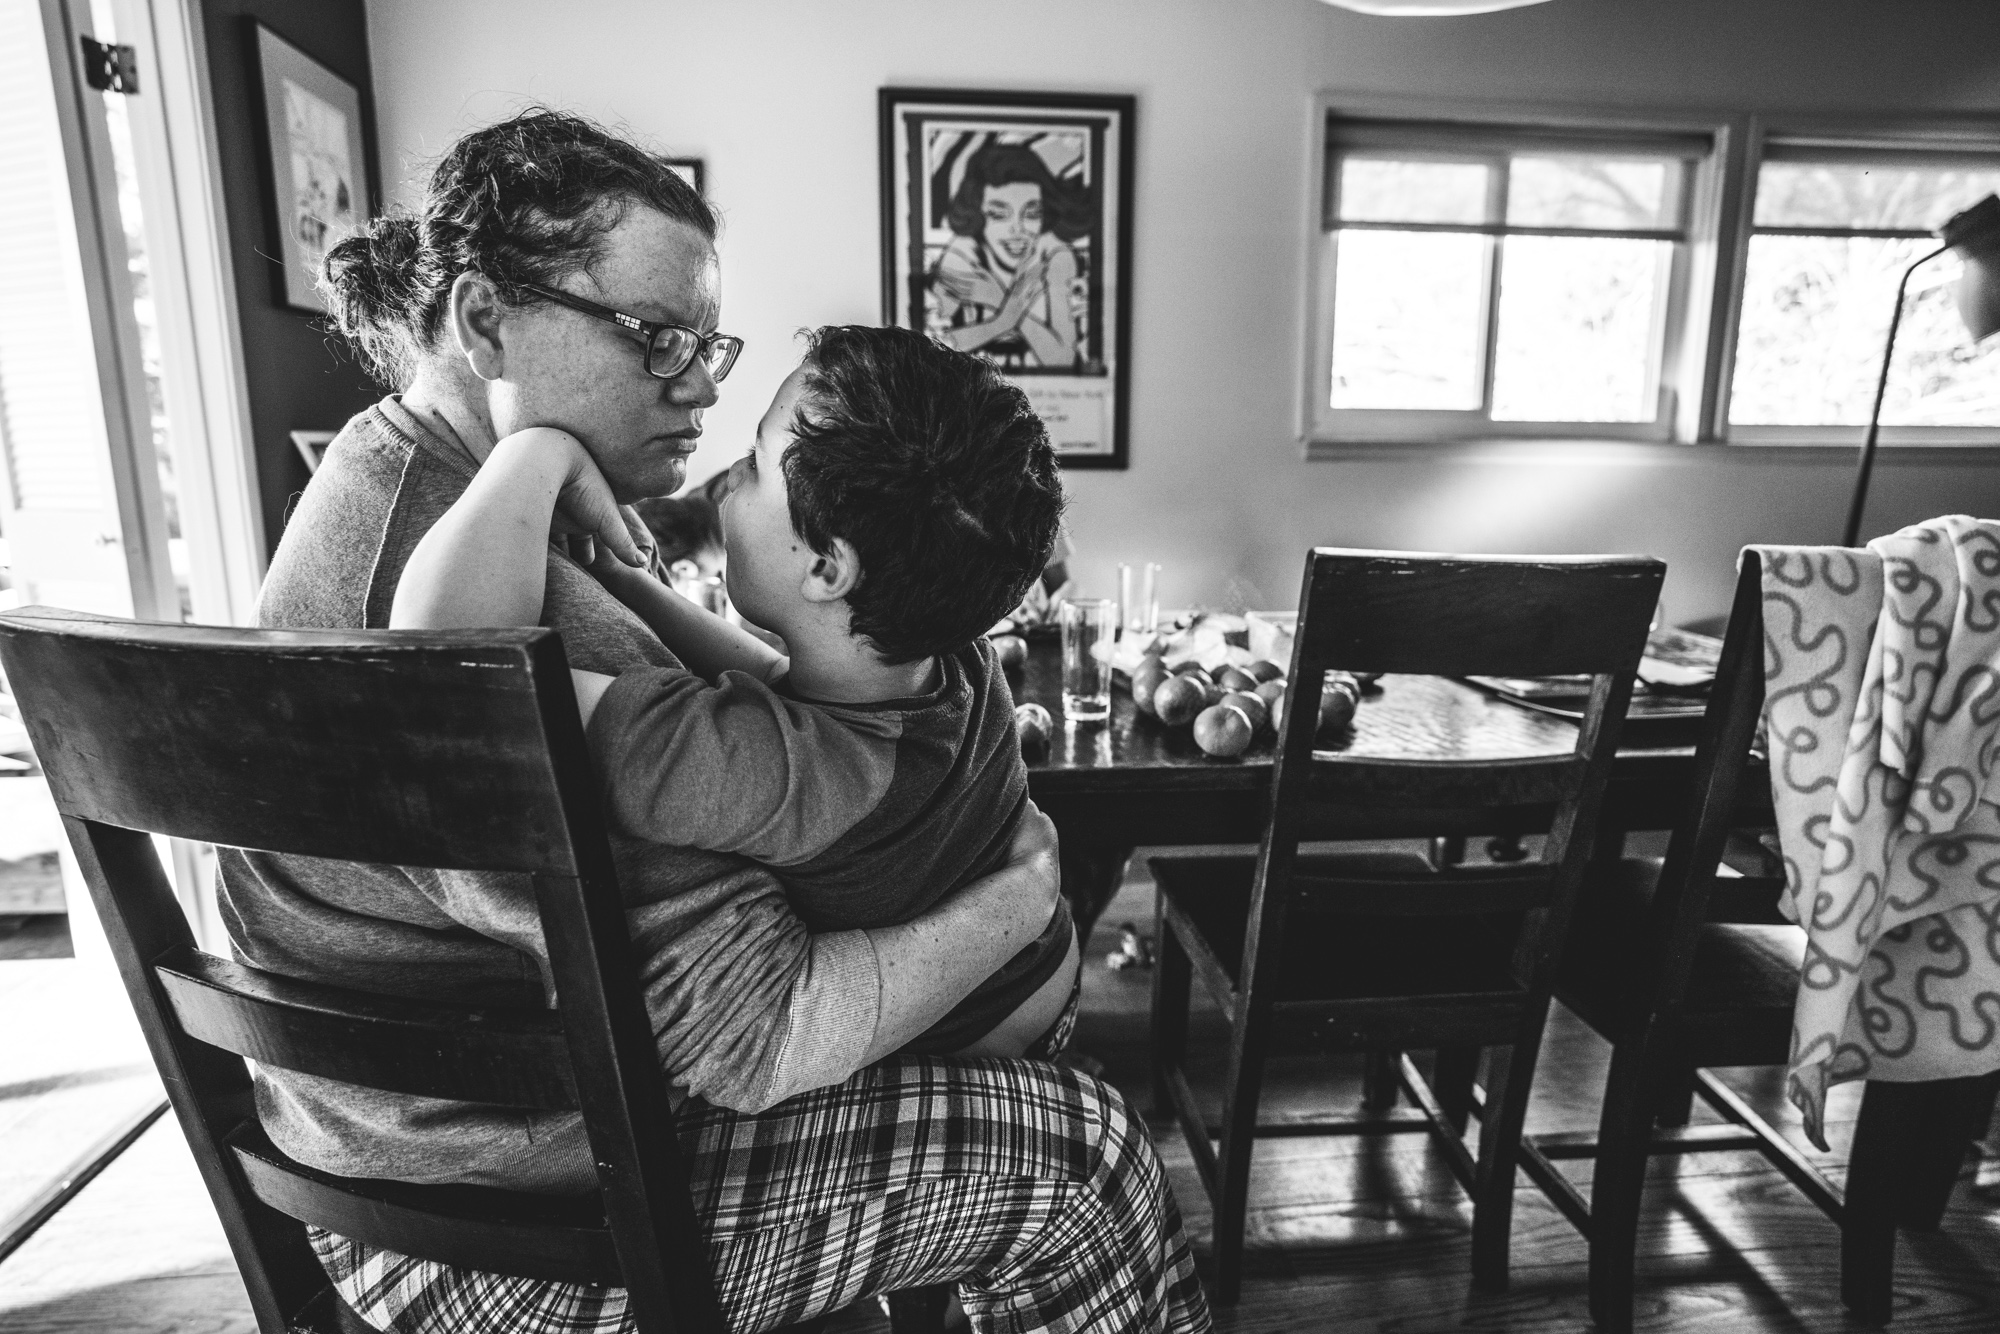 Black and white photo of a mother looking lovingly at her son who is sitting on her lap at the breakfast table during their documentary family photography session